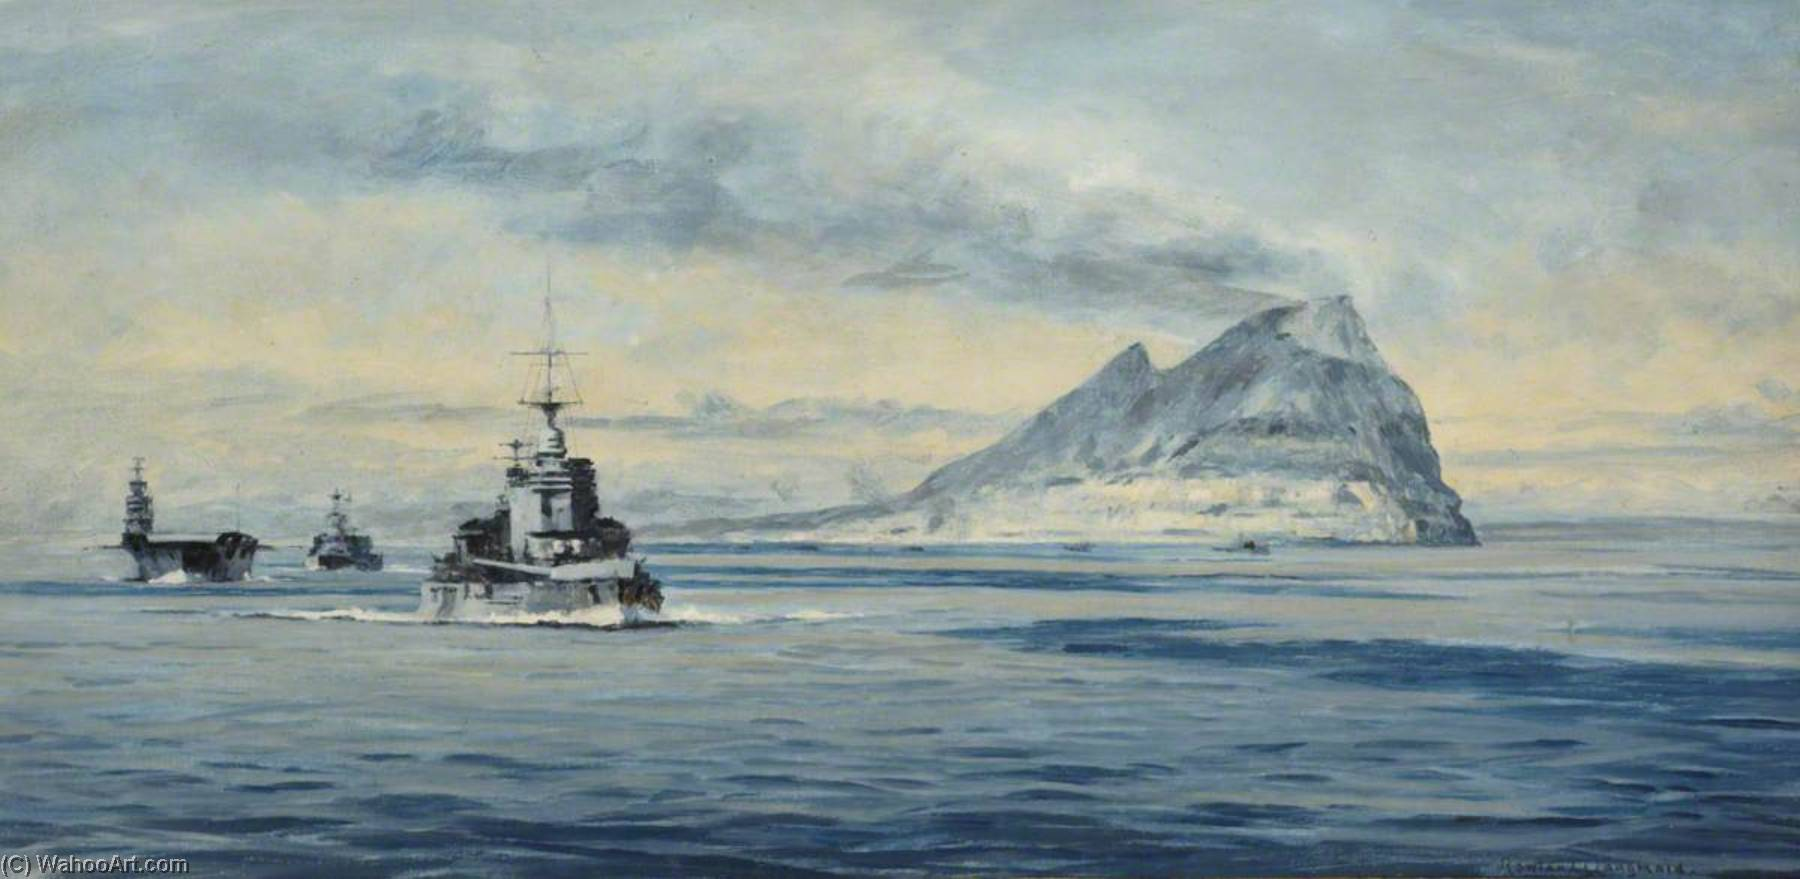 Force H off Gibraltar, 1940, 1940 by Rowland Langmaid | Art Reproduction | ArtsDot.com